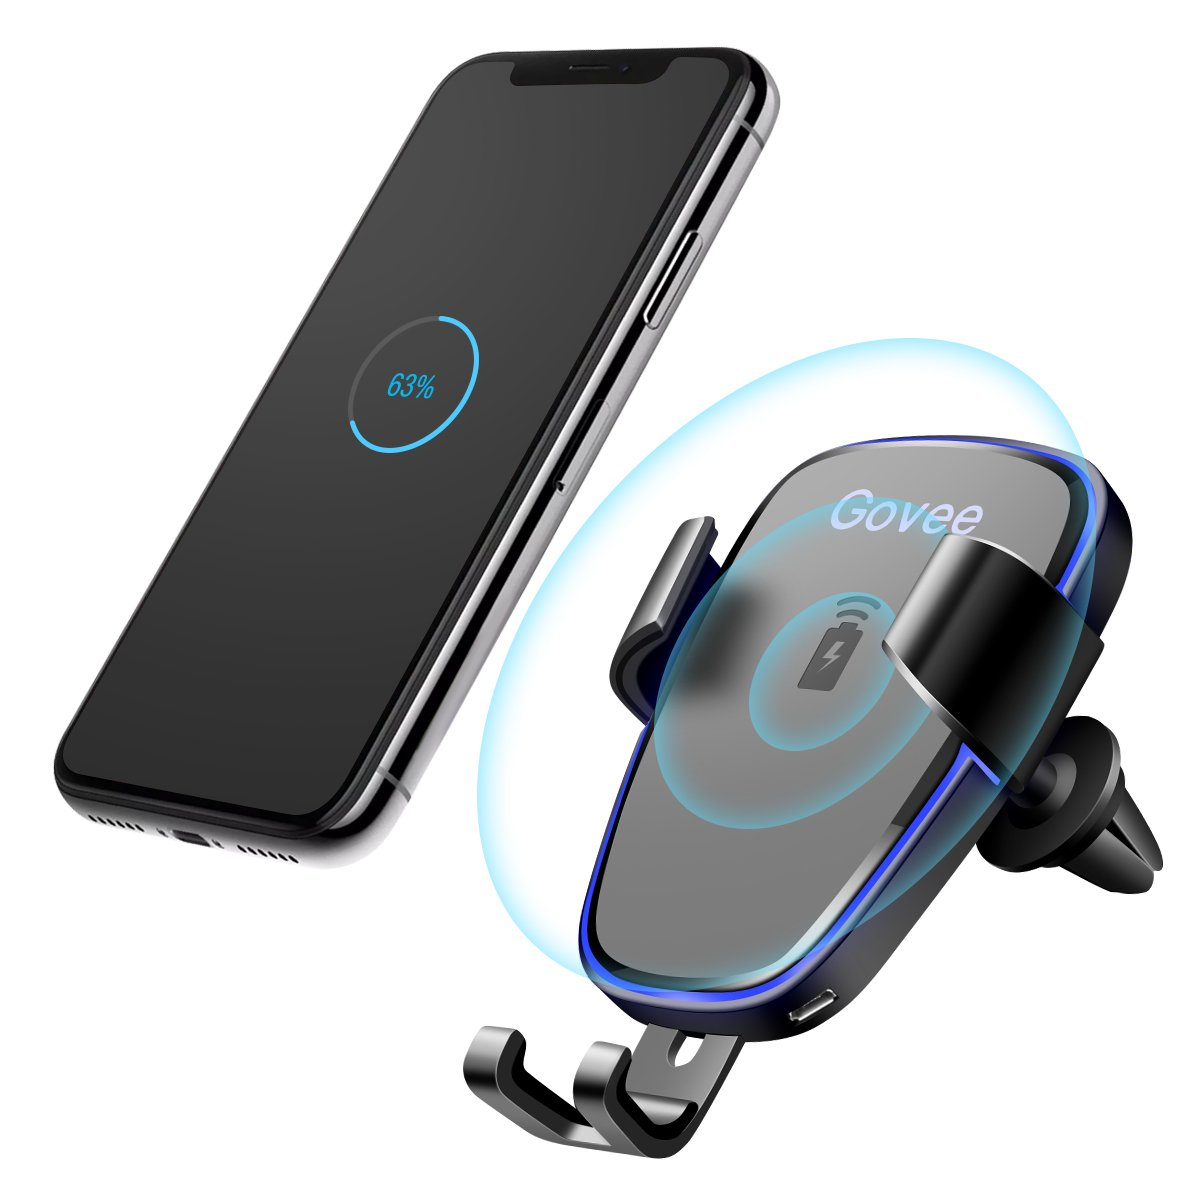 Wireless Car Charger, Govee Fast Charging Car Mount Kit Qi Gravity Vent Phone Holder for iPhone X, iPhone 8/8 plus, Samsung Galaxy S9/S9 plus/S8/S8 plus/S7, Note 8 by MINGERR